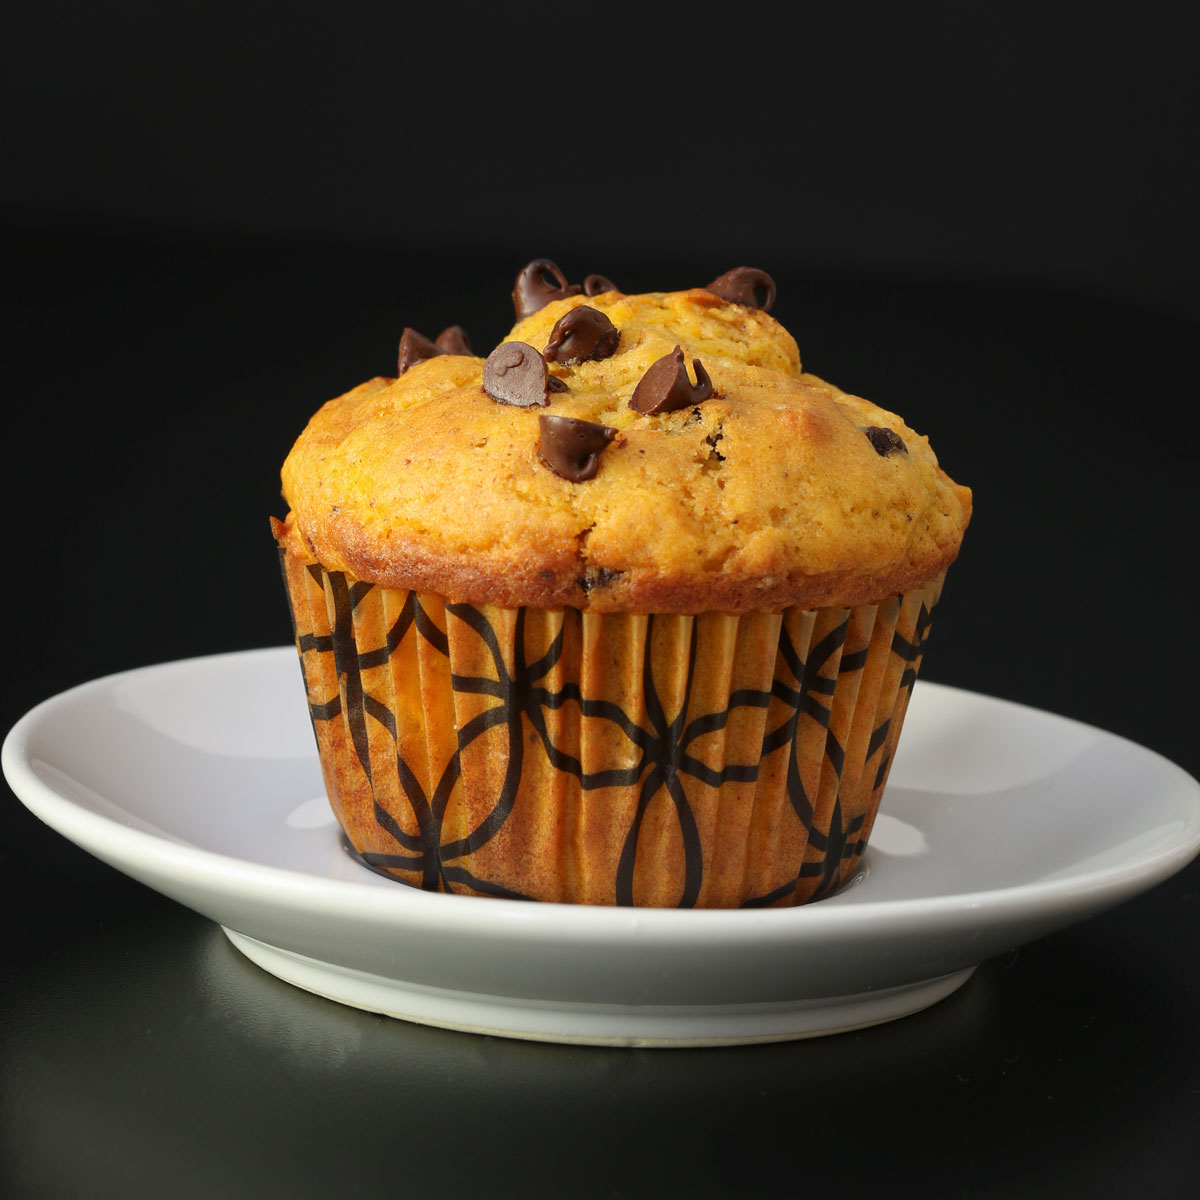 chocolate chip pumpkin muffin on white saucer in front of black background.